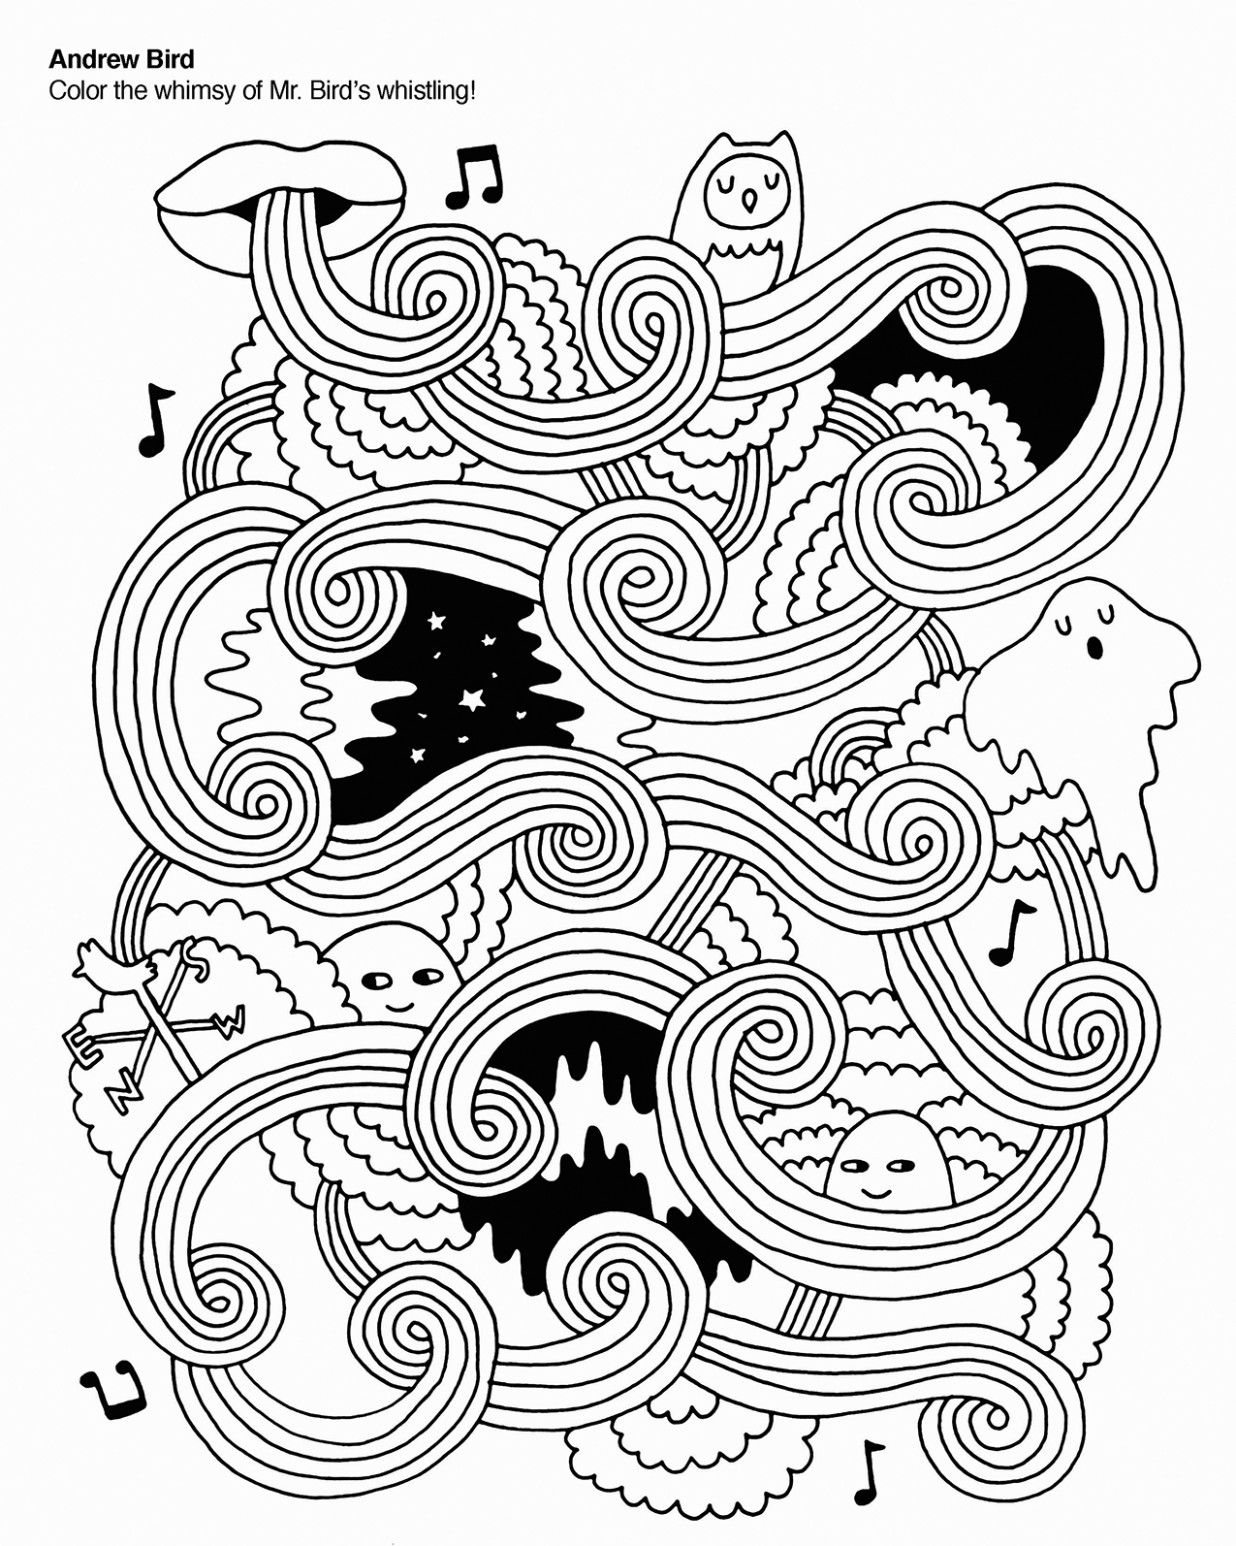 Coloring Books for Grown-ups: 18 Free Pages to Print – Chronicle ..